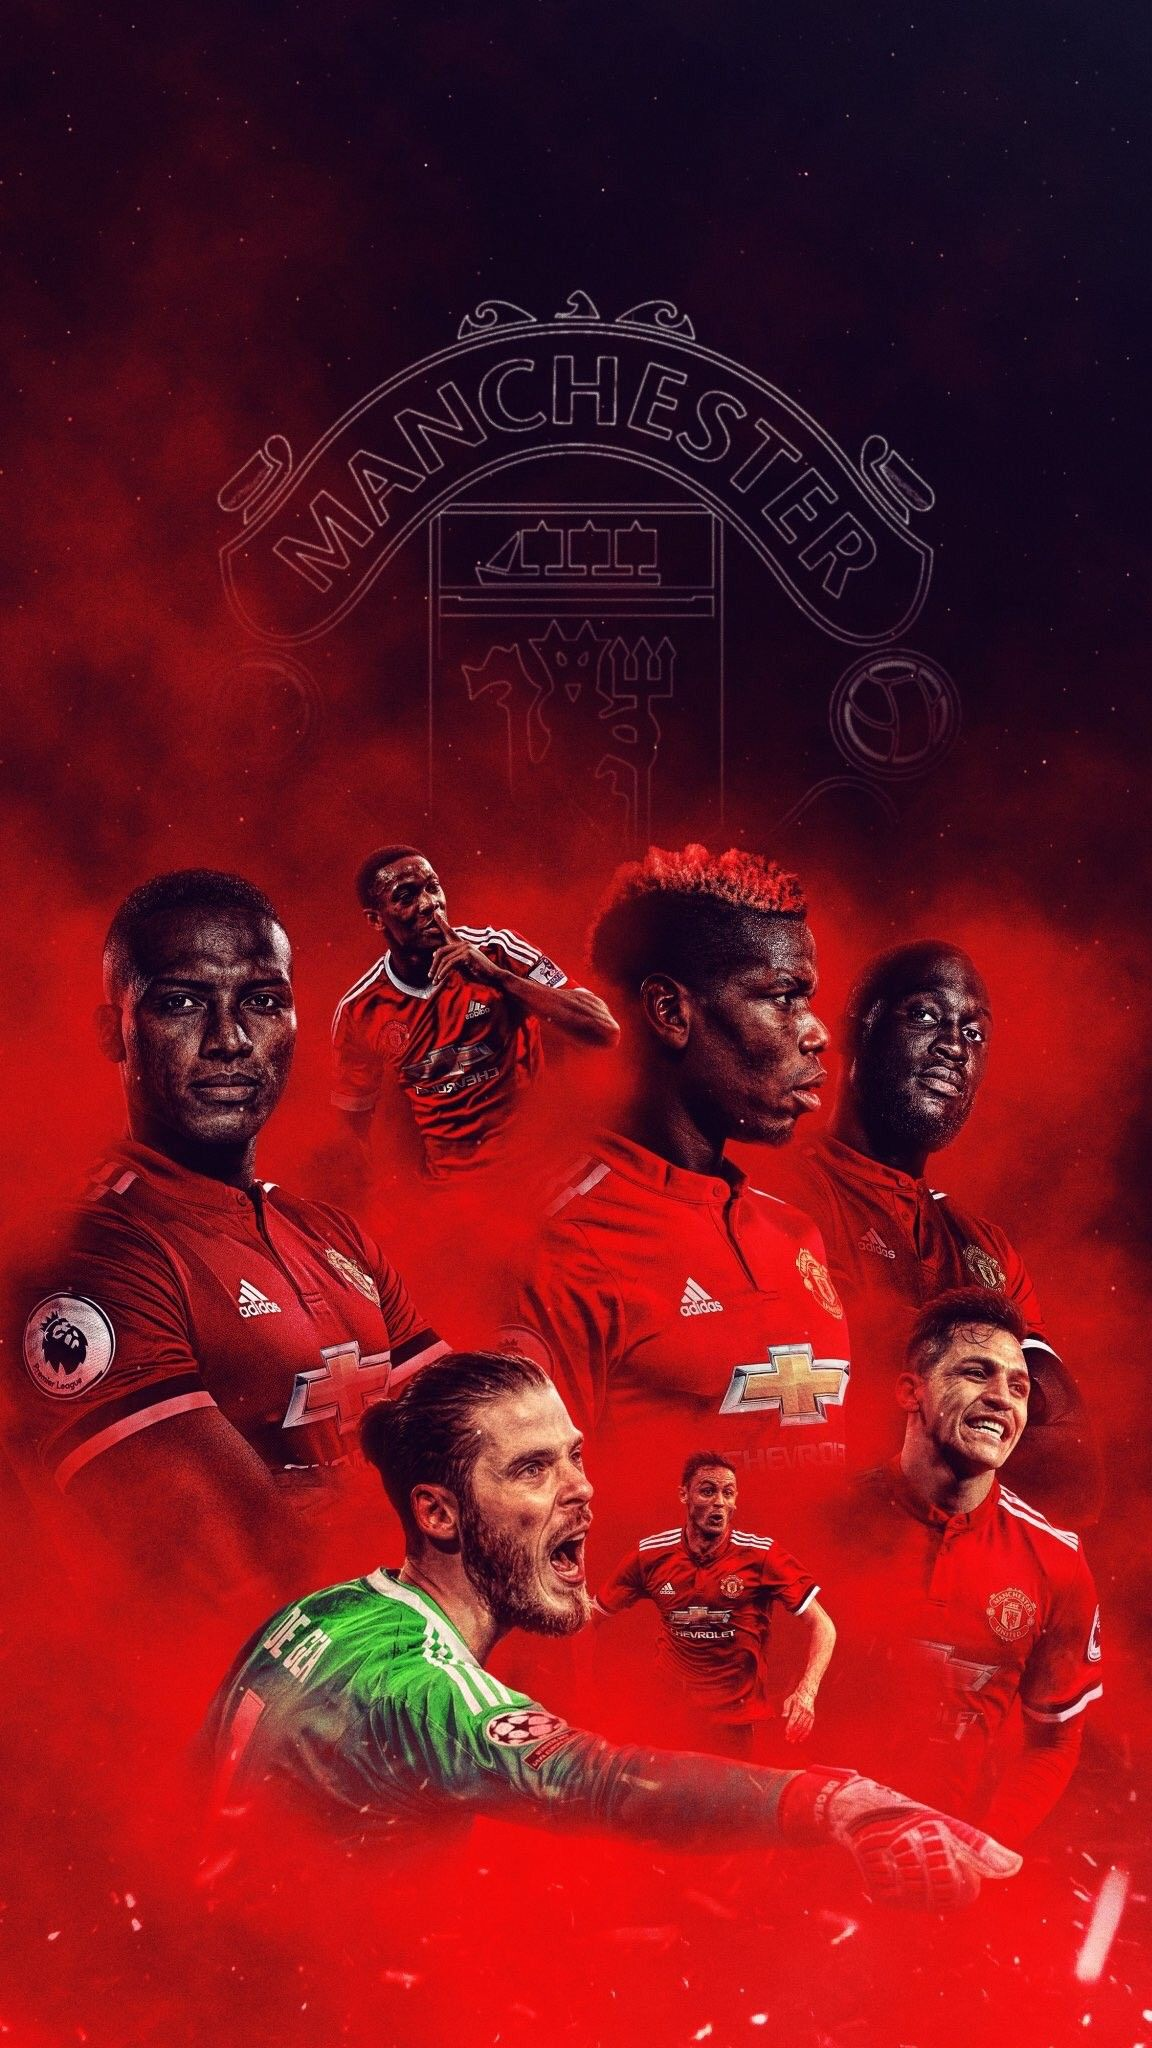 List of Beautiful Manchester United Wallpapers 2007